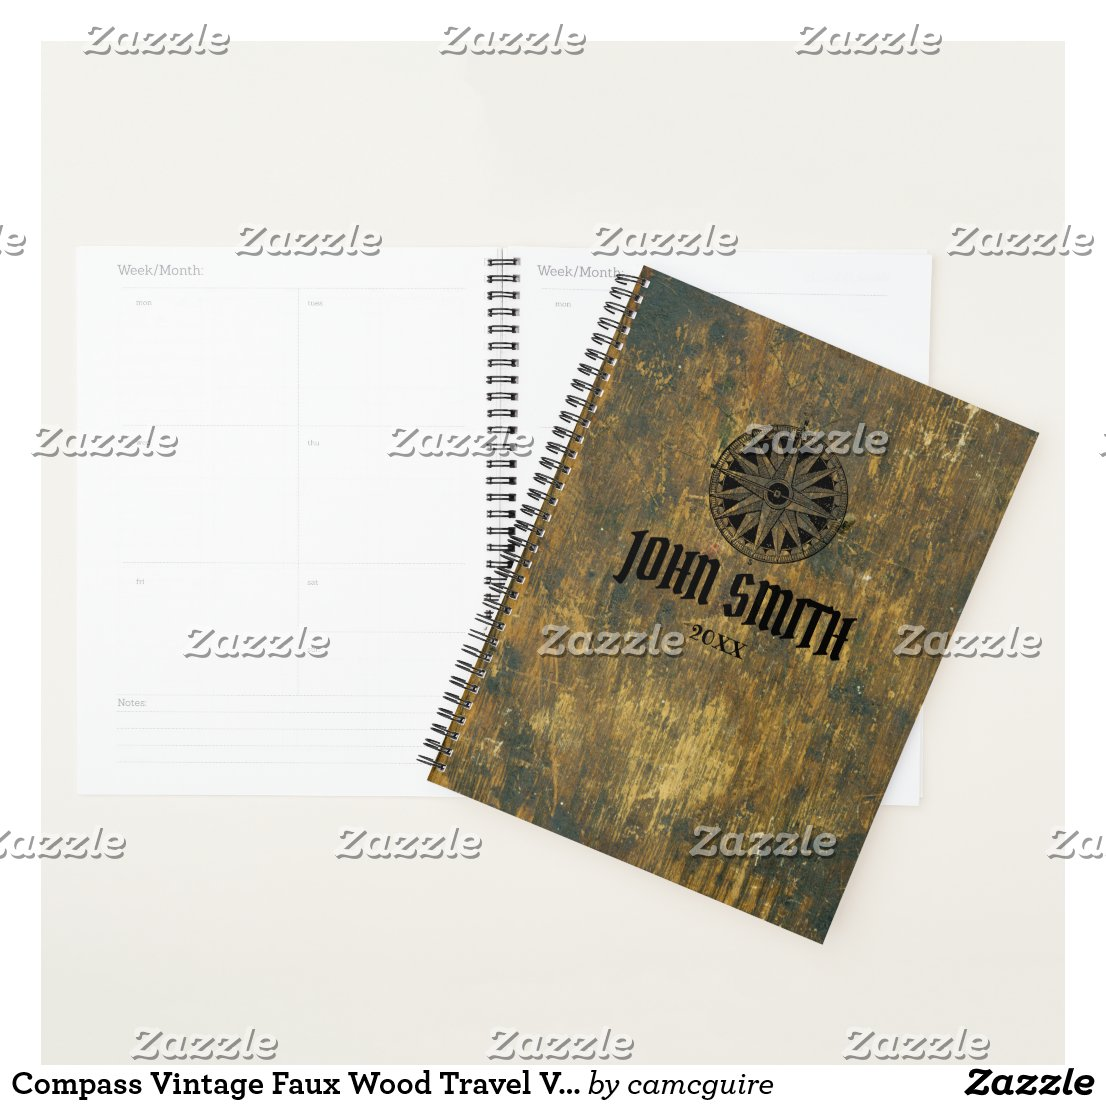 Compass Vintage Faux Wood Travel Voyage Adventure Planner